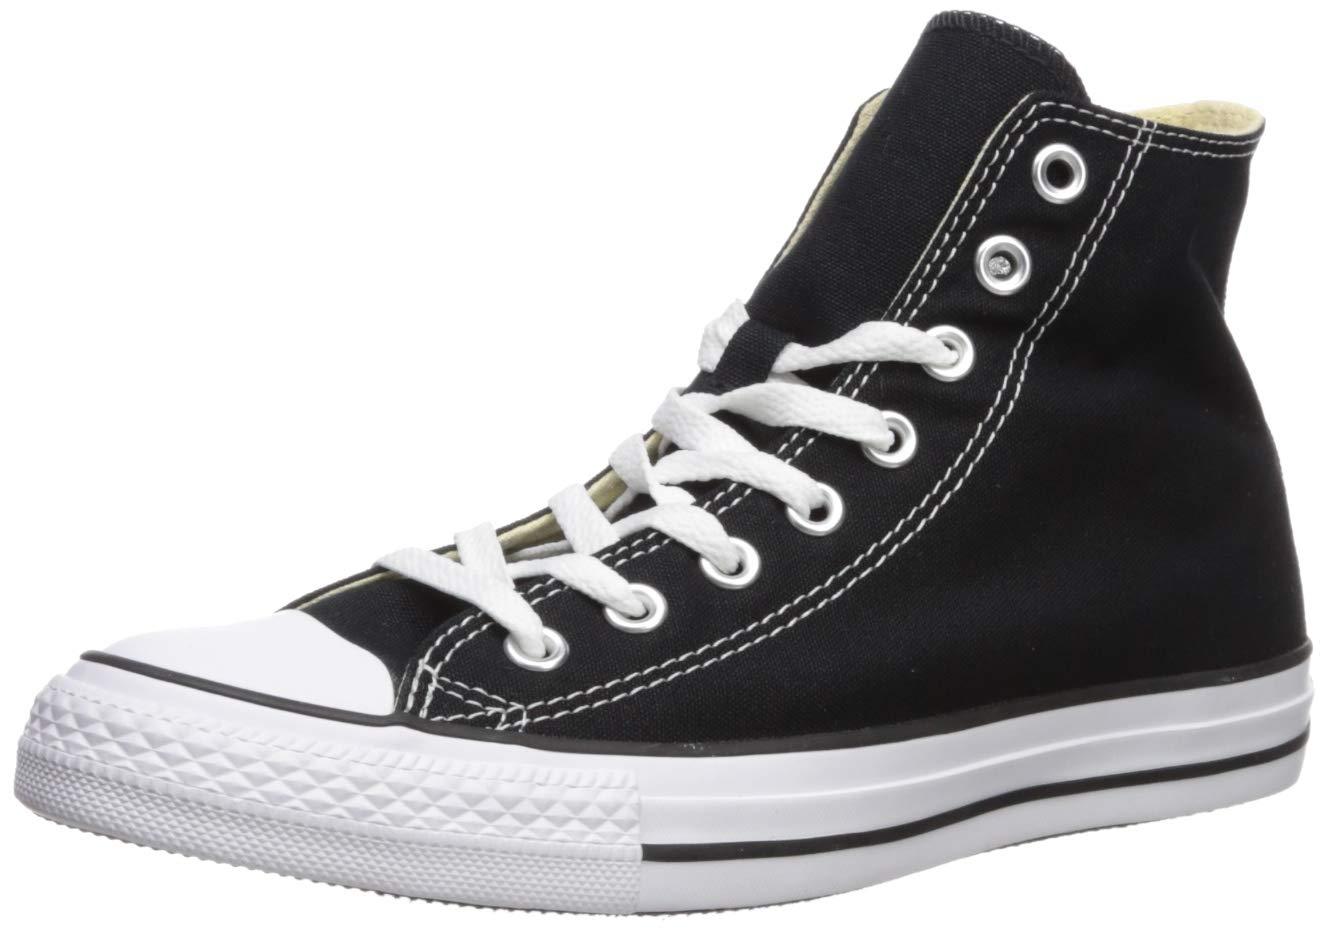 Converse Chuck Taylor All Star High Top Black 4 D(M) US